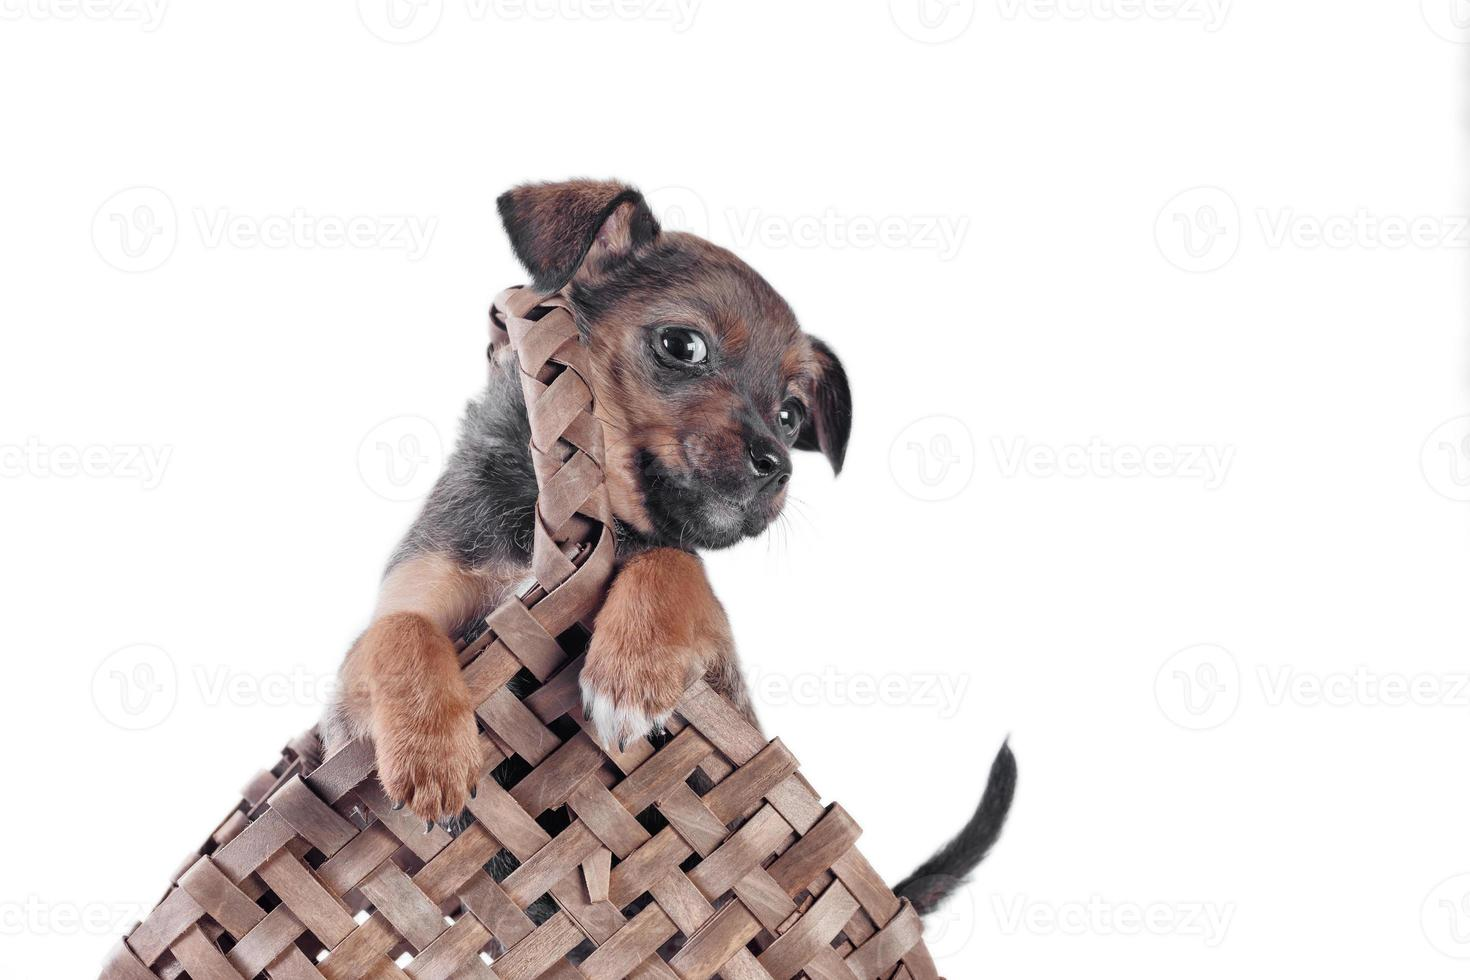 mongrel puppy in a wicker basket with a handle photo